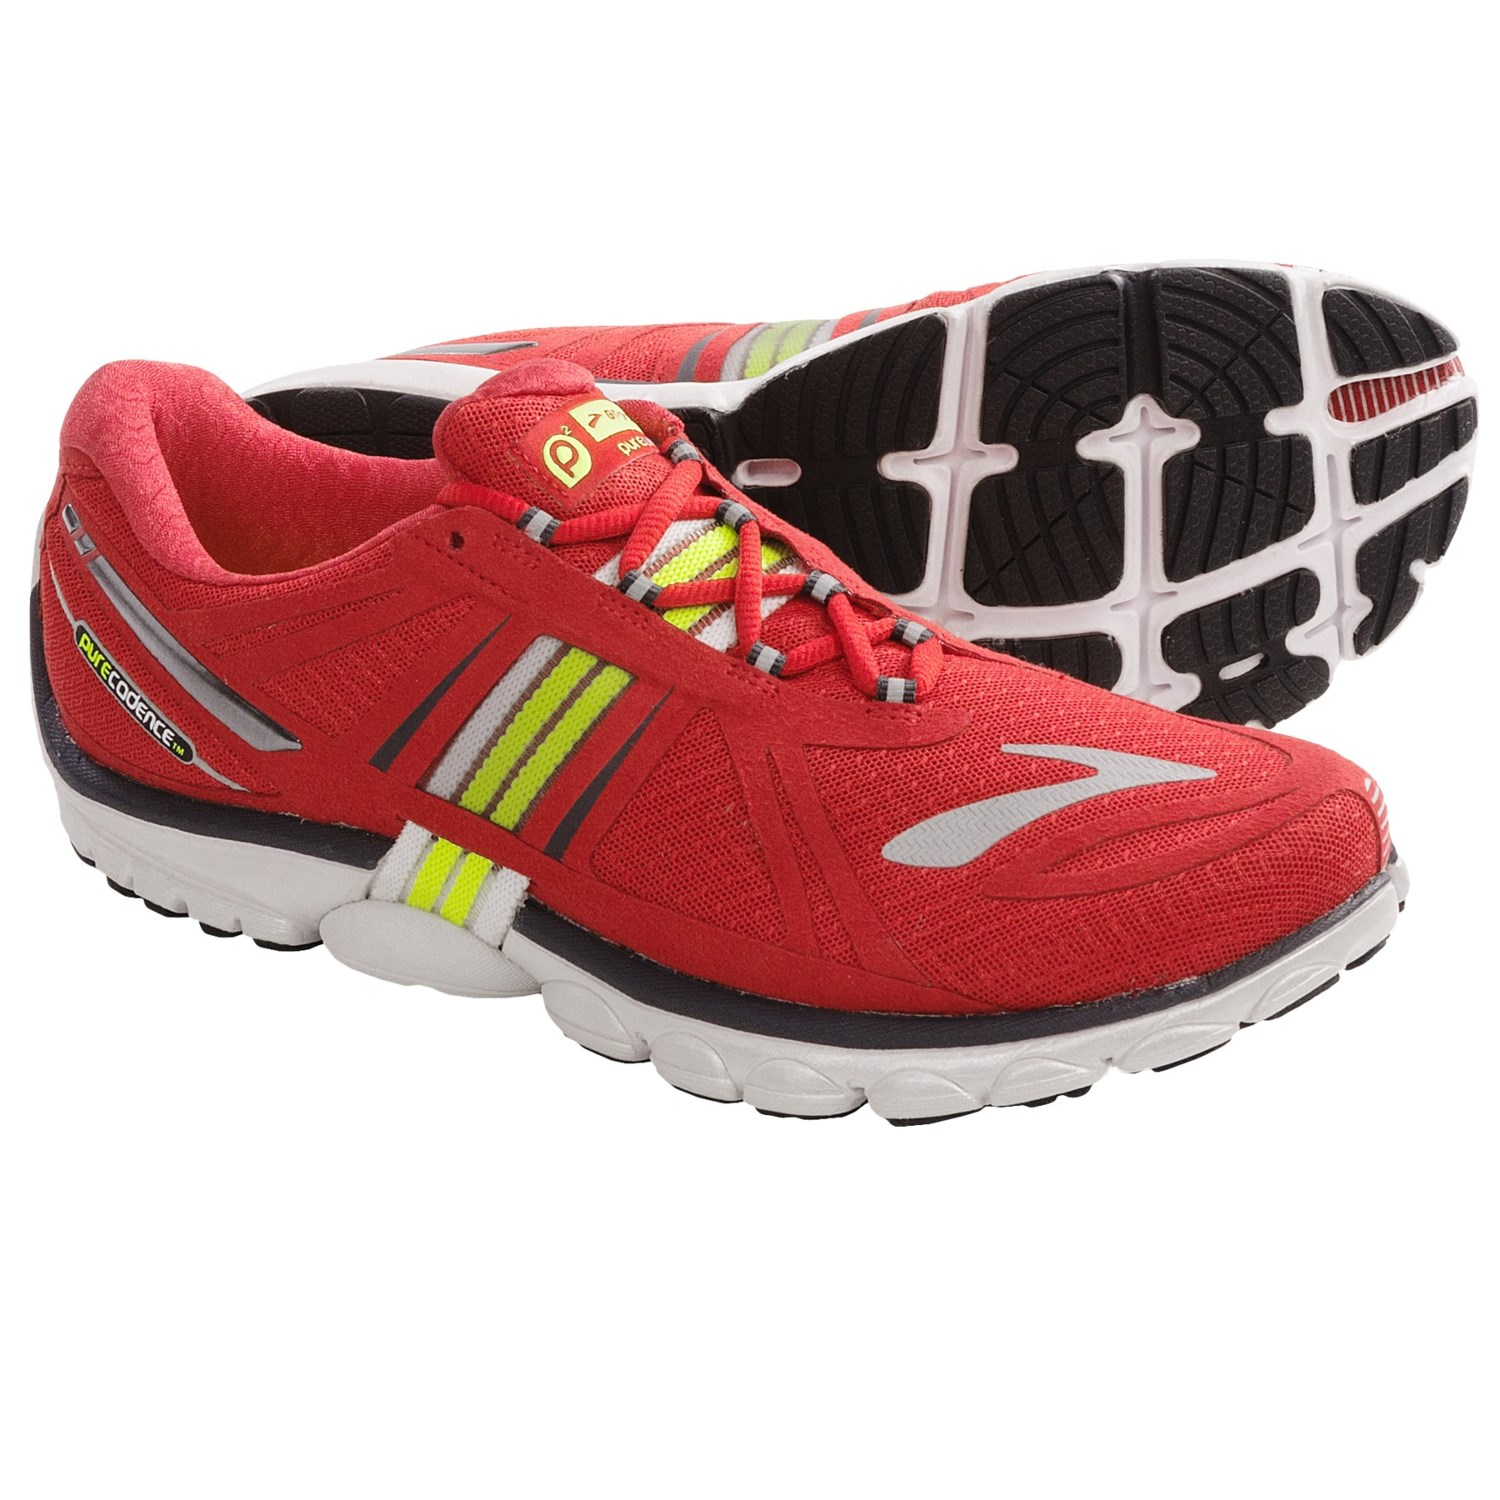 purecadence 2 running shoes minimalist for